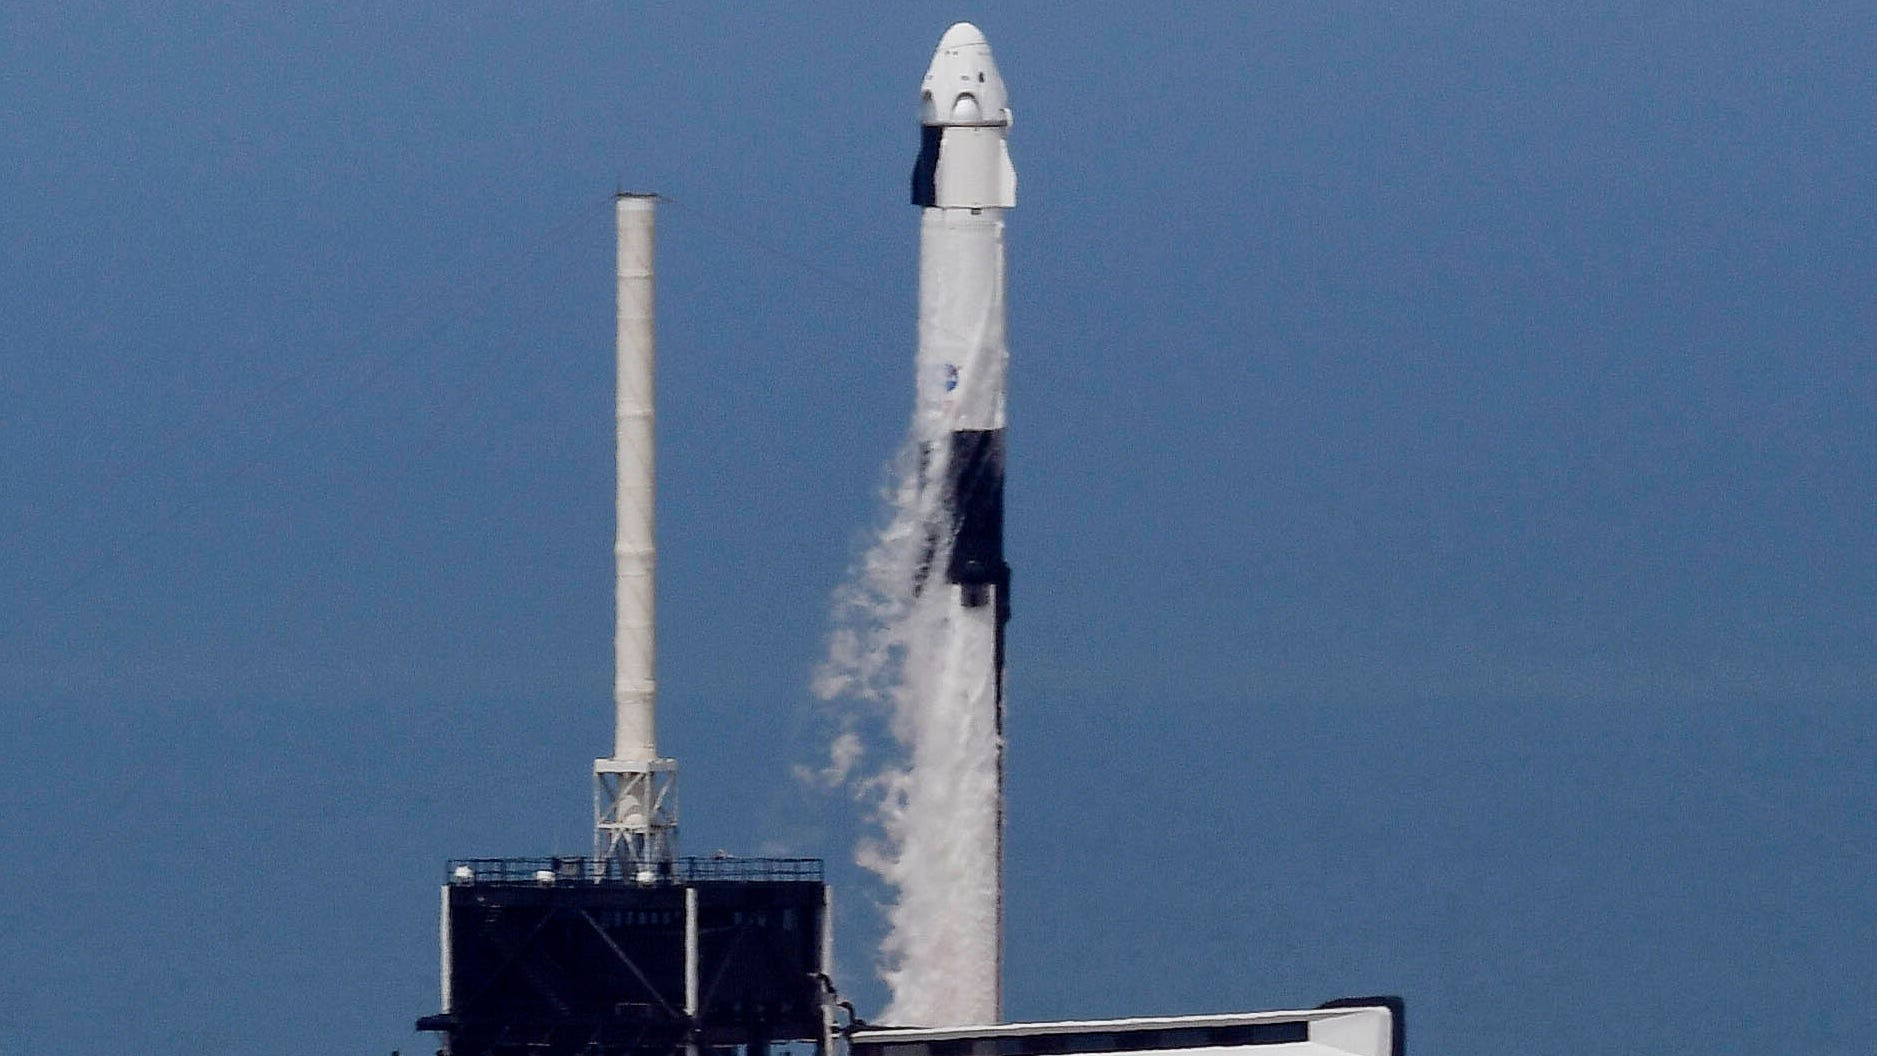 A SpaceX Falcon 9 rocket lifts off from pad 39A at Kennedy Space Center on Saturday, May 30, 2020, carrying astronauts Bob Behnken and Doug Hurley. The duo will spend one to four months on the International Space Station.